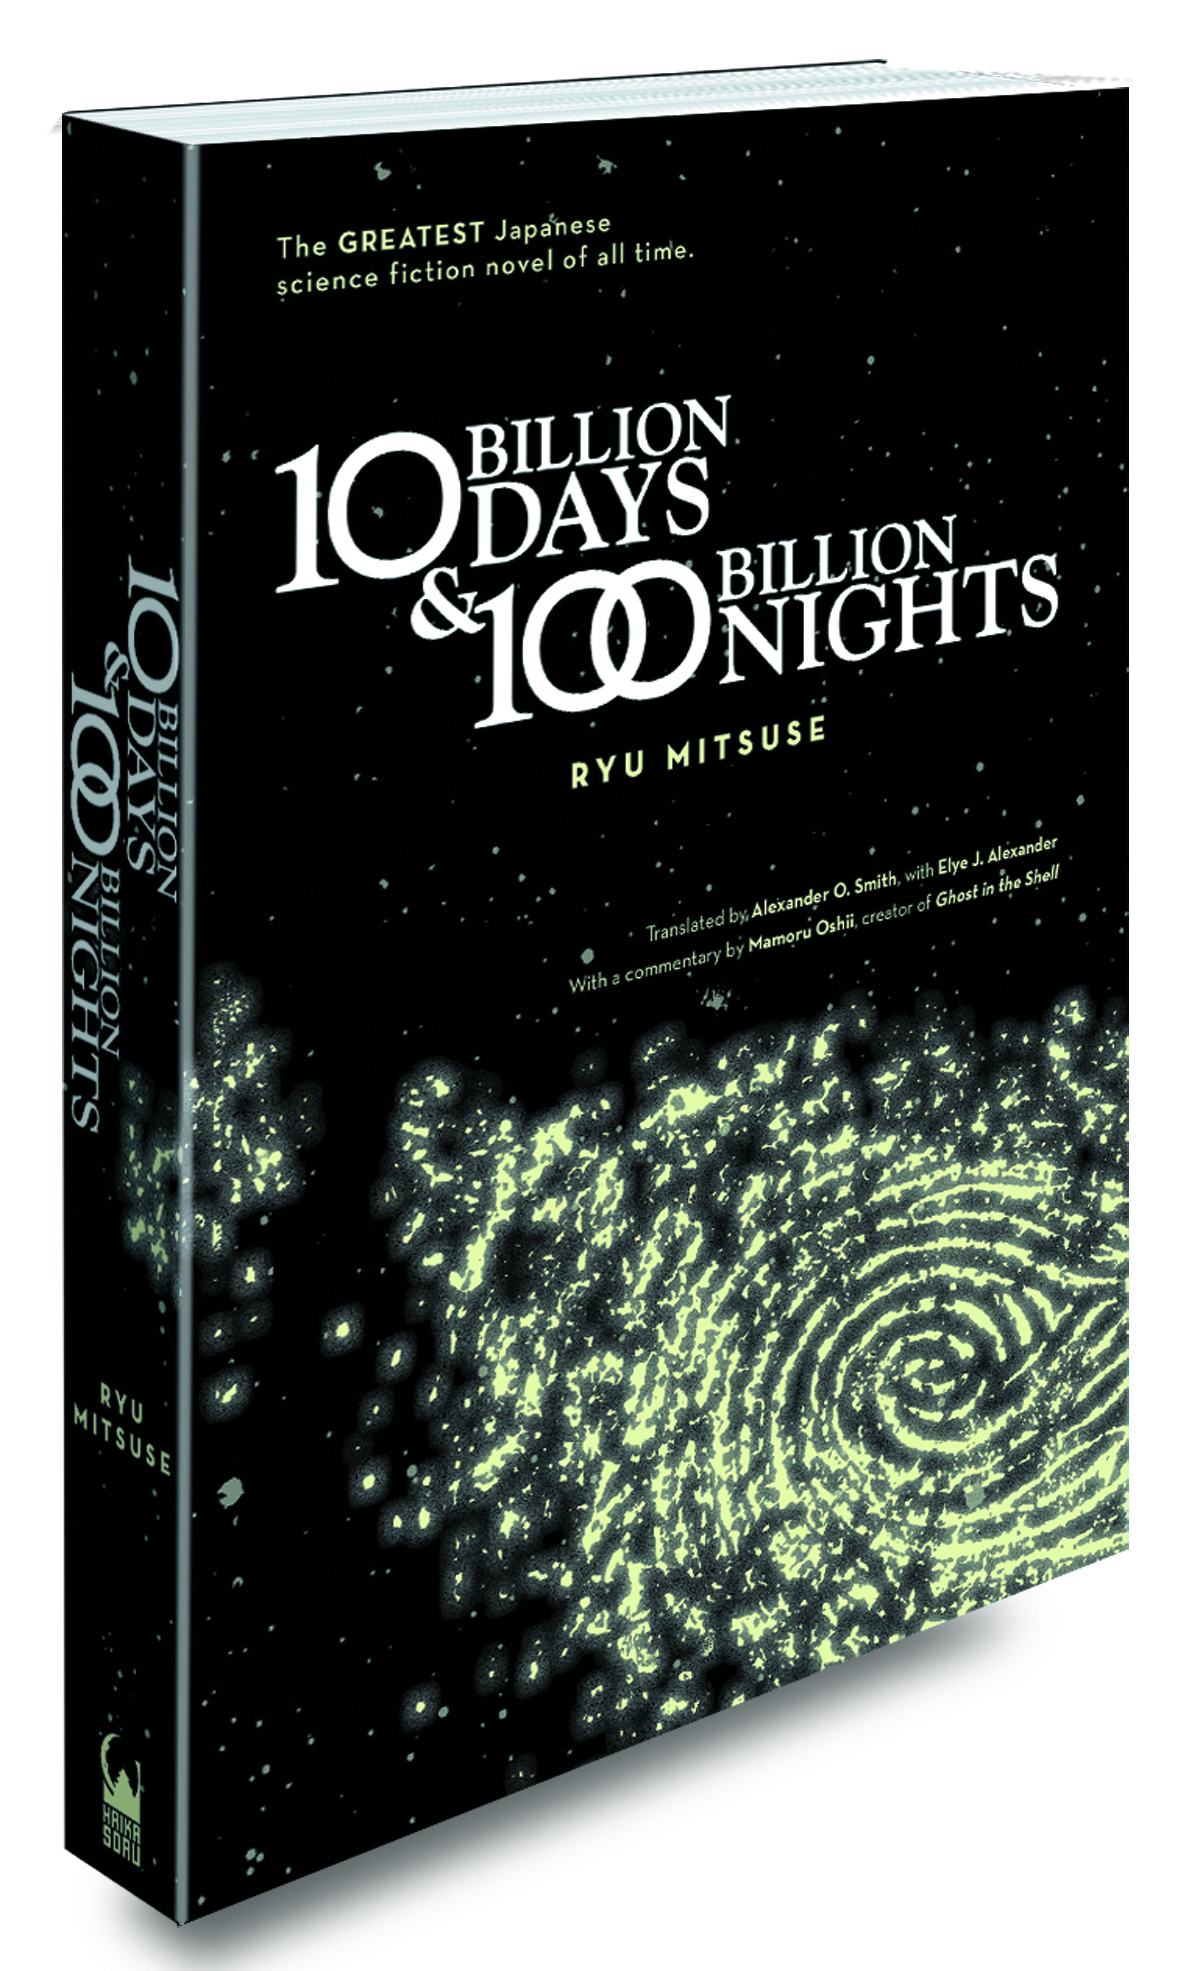 TEN BILLION DAYS & ONE HUNDRED BILLION NIGHTS NOVEL